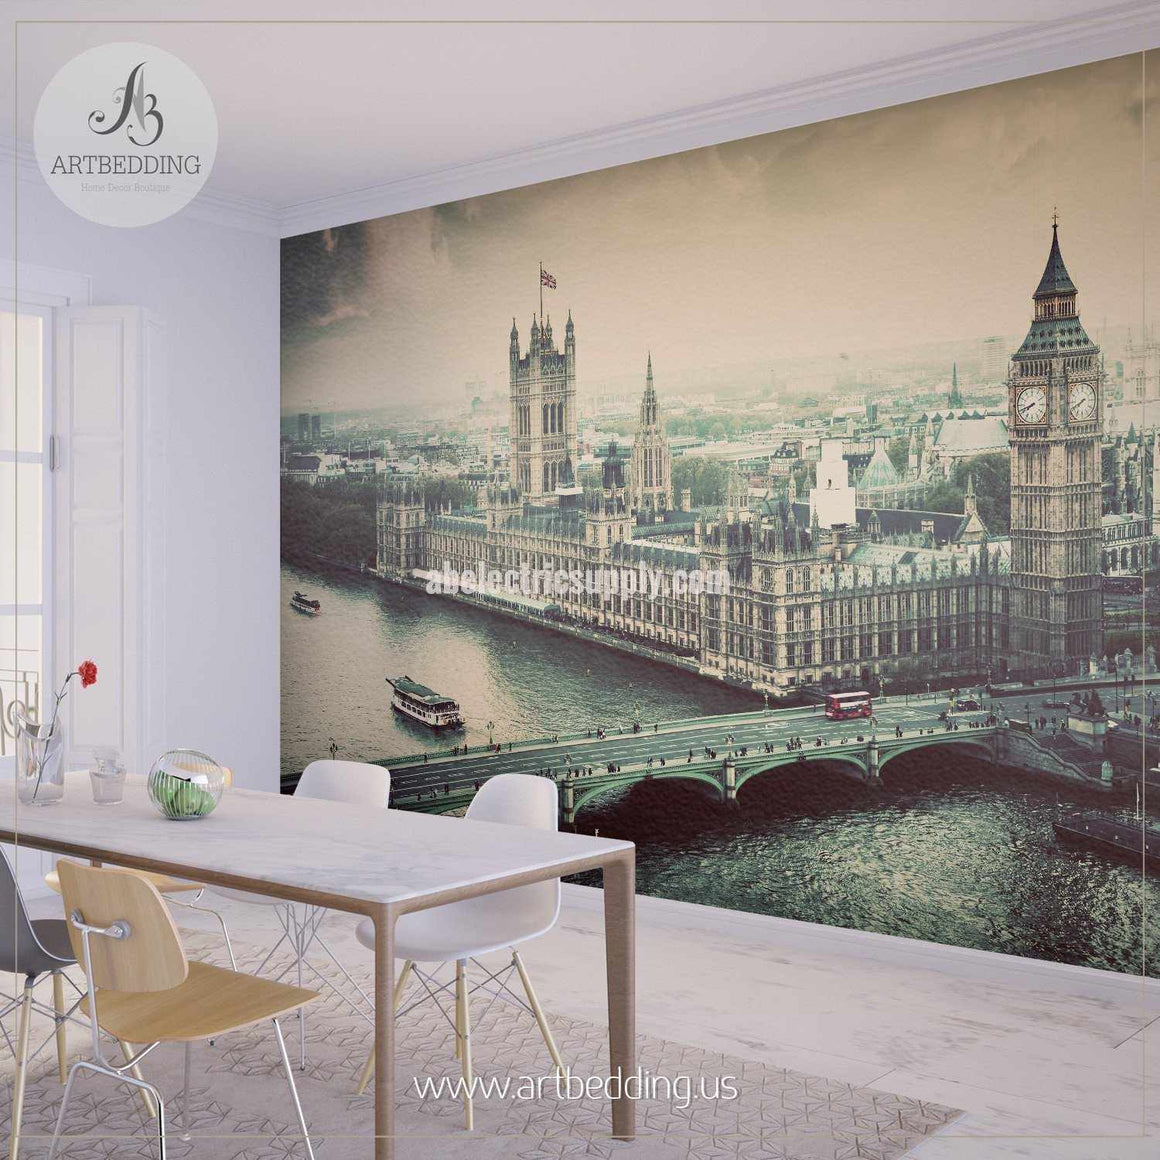 Iconic Big Ben, the Palace of Westminster in Vintage, Retro Style Cityscape Wall Mural, England Photo sticker, England wall decor wall mural